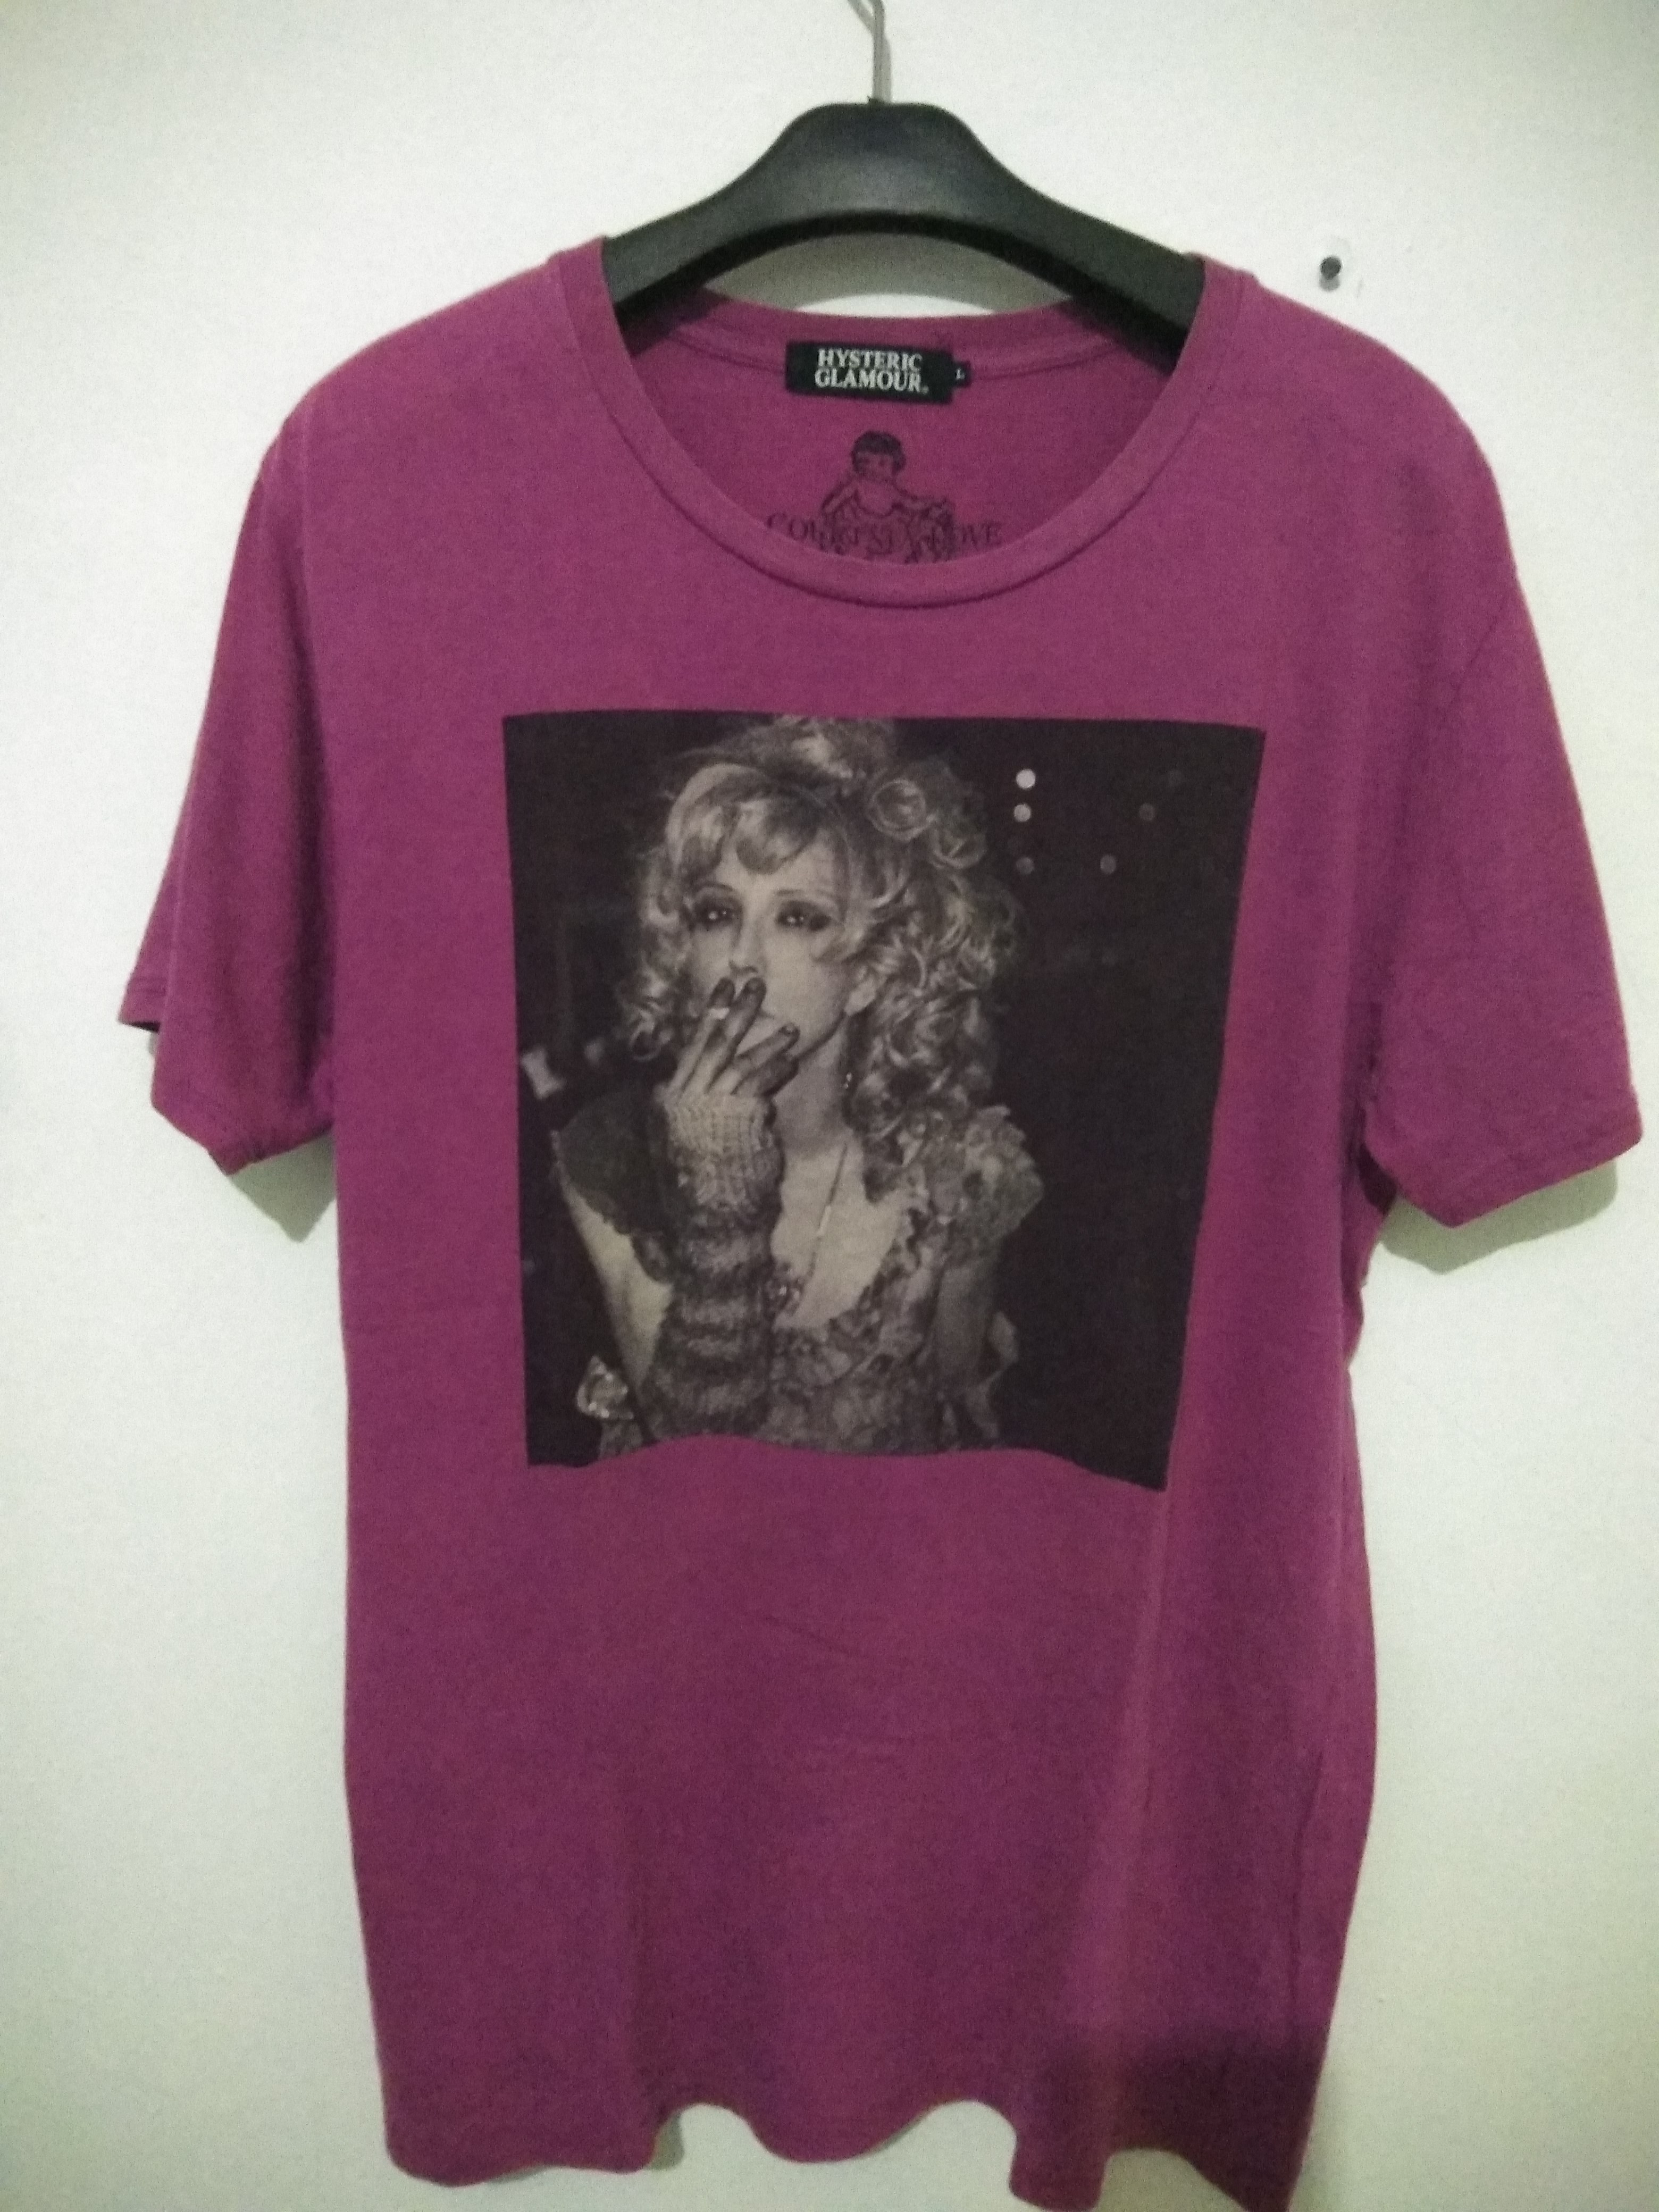 027f1ca81 Hysteric Glamour Hysteric Glamour Tee X Courtney Love (hole Band ...